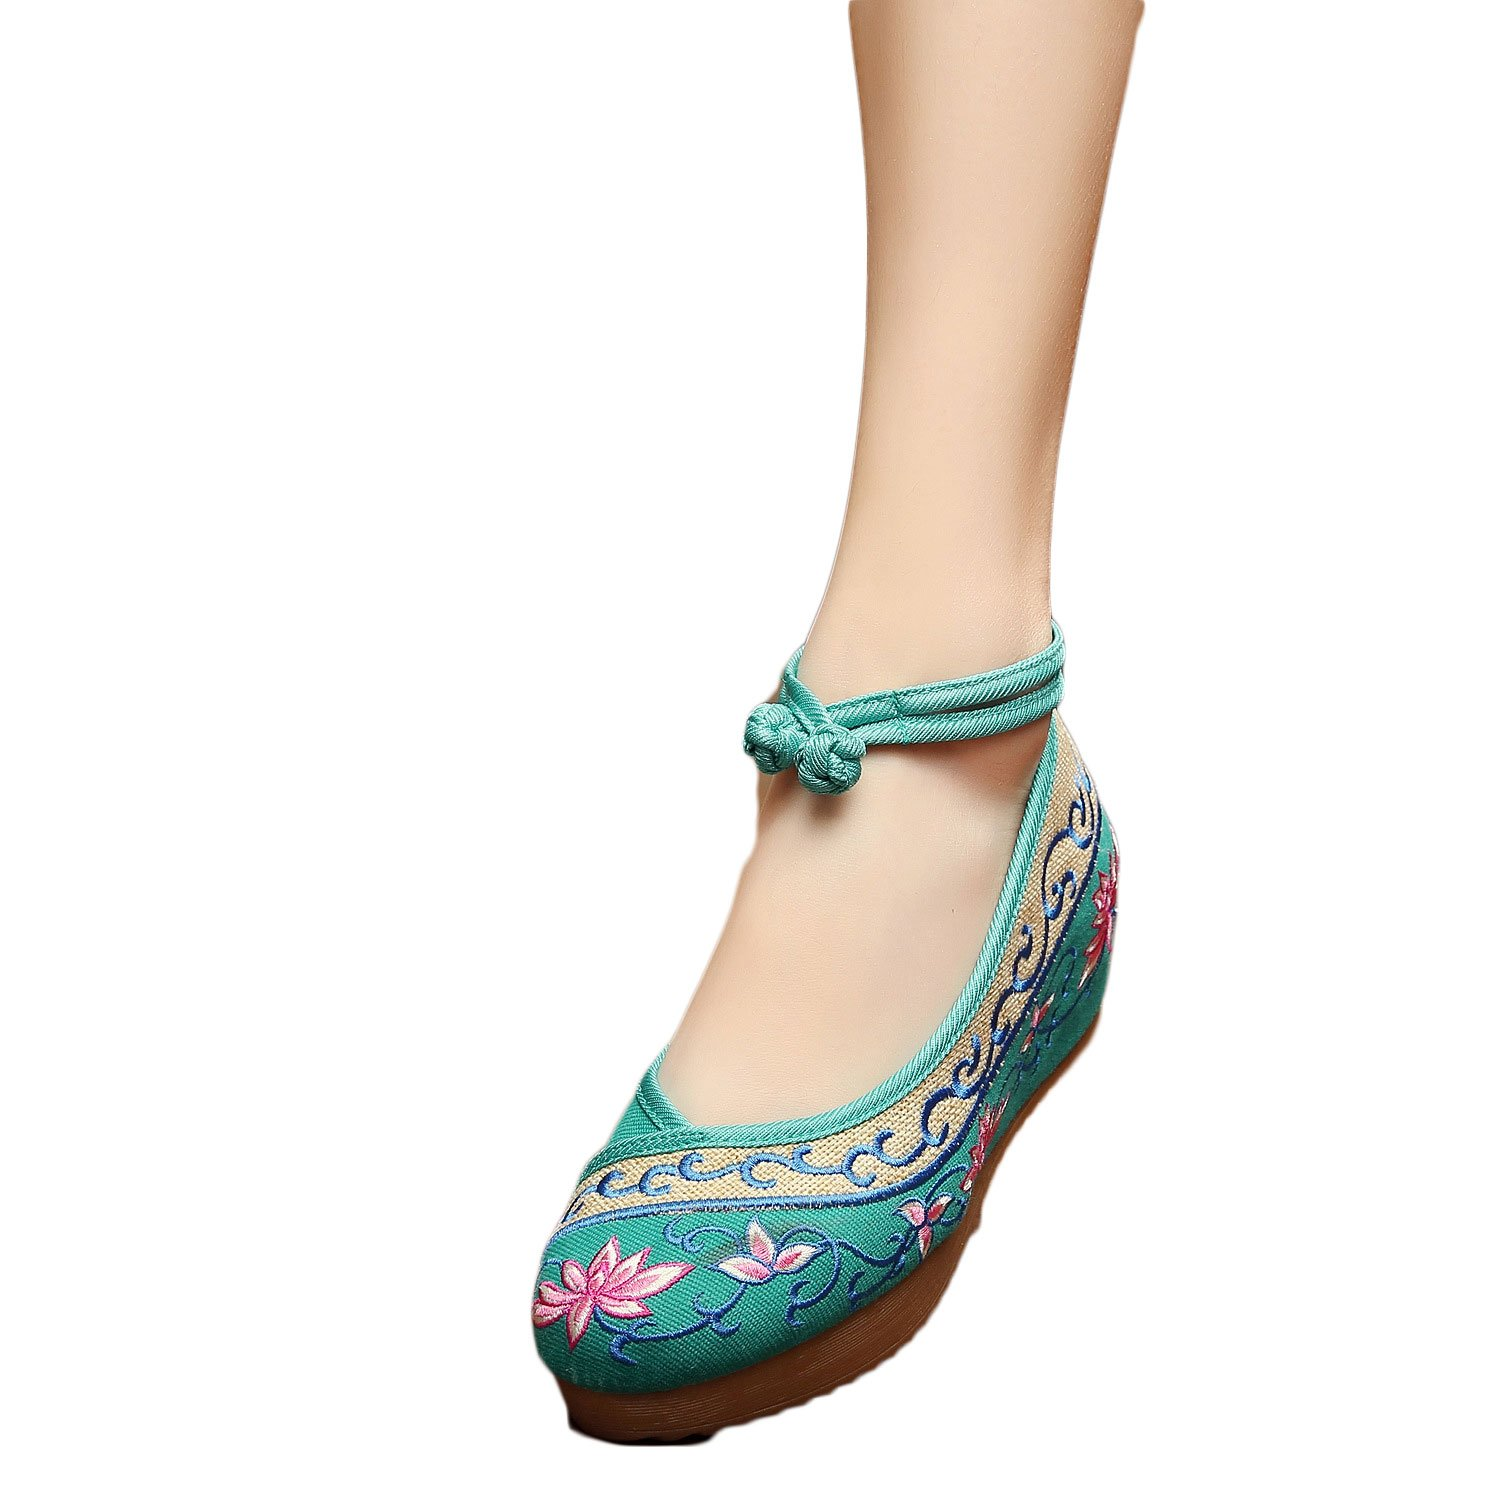 EXCELLANYARD Women's Embroidery Platform Wedges B01KL8G3I8 6 B(M) US|04-green